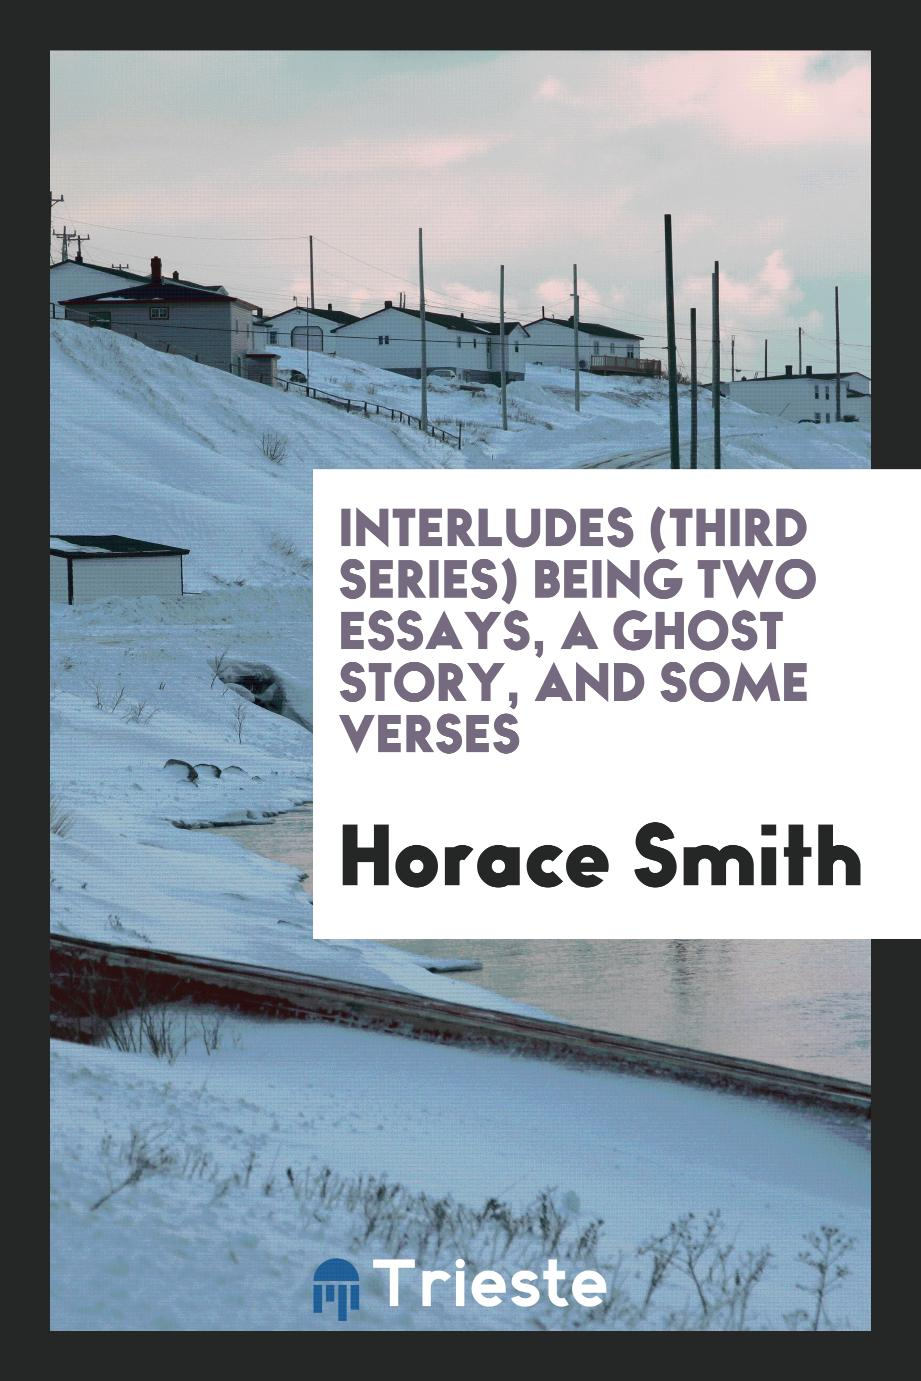 Interludes (Third Series) Being Two Essays, a Ghost Story, and Some Verses